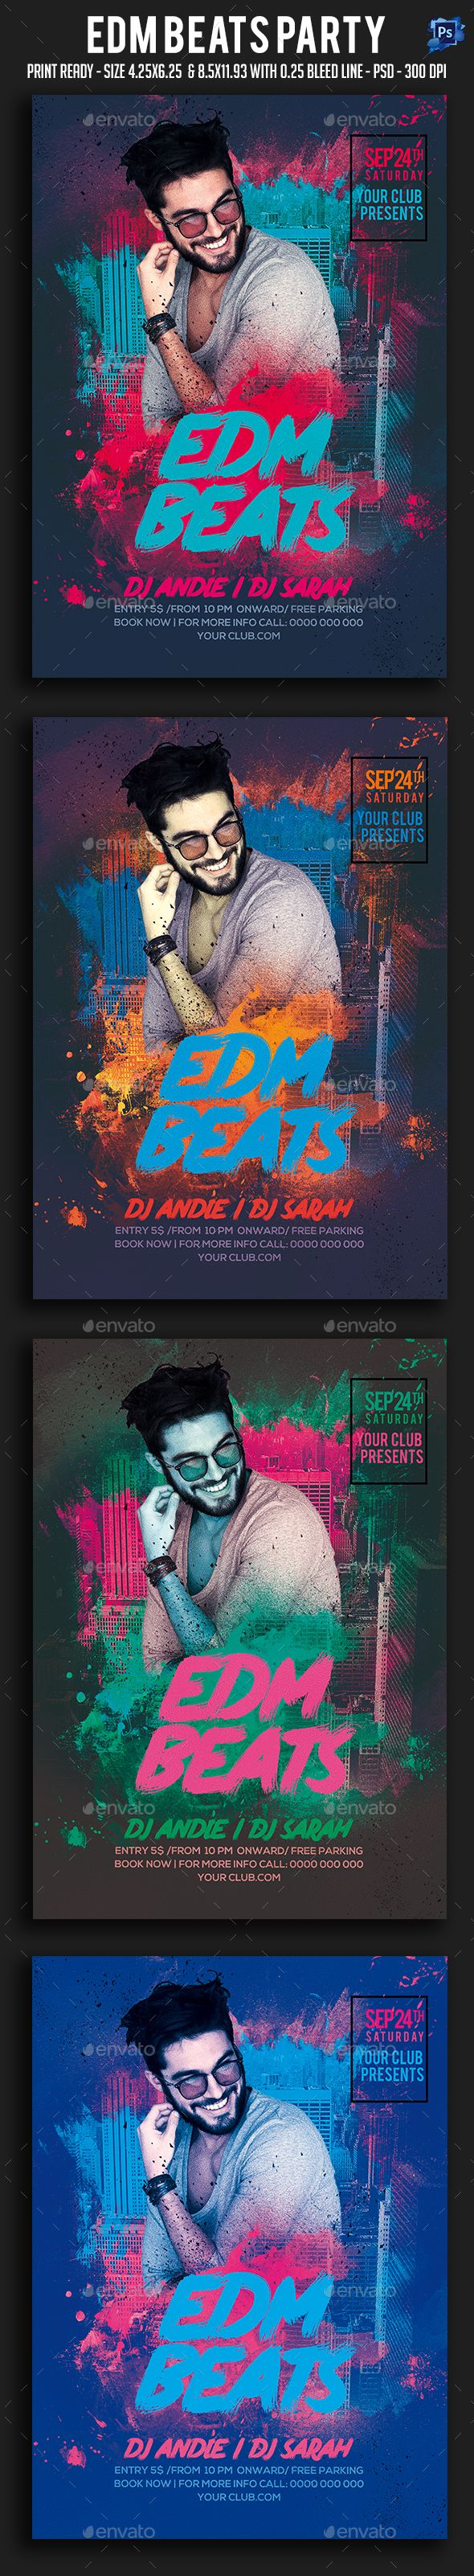 Edm Beats Party Flyer It¡¯s unique flyers, poster design for your business Advertisement purpose. All Elements are in individual layers and all text is editable! Easy to customize & edit & Available for 2 sizes as require most customization highlight colors. Pr